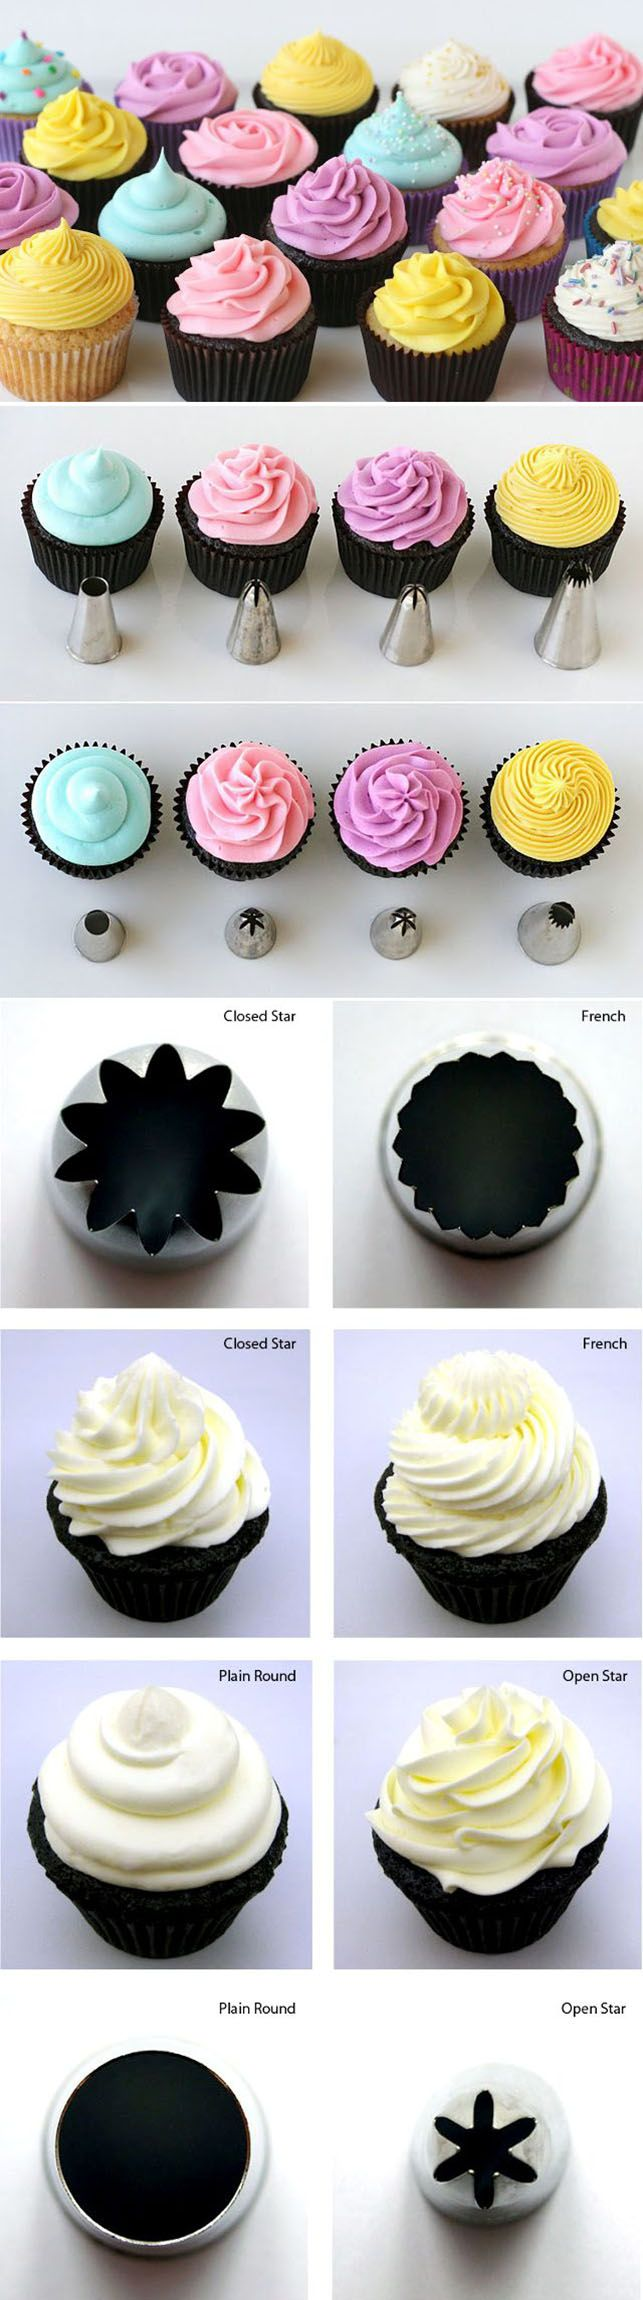 (Cupcake Basics) How to Frost Cupcakes